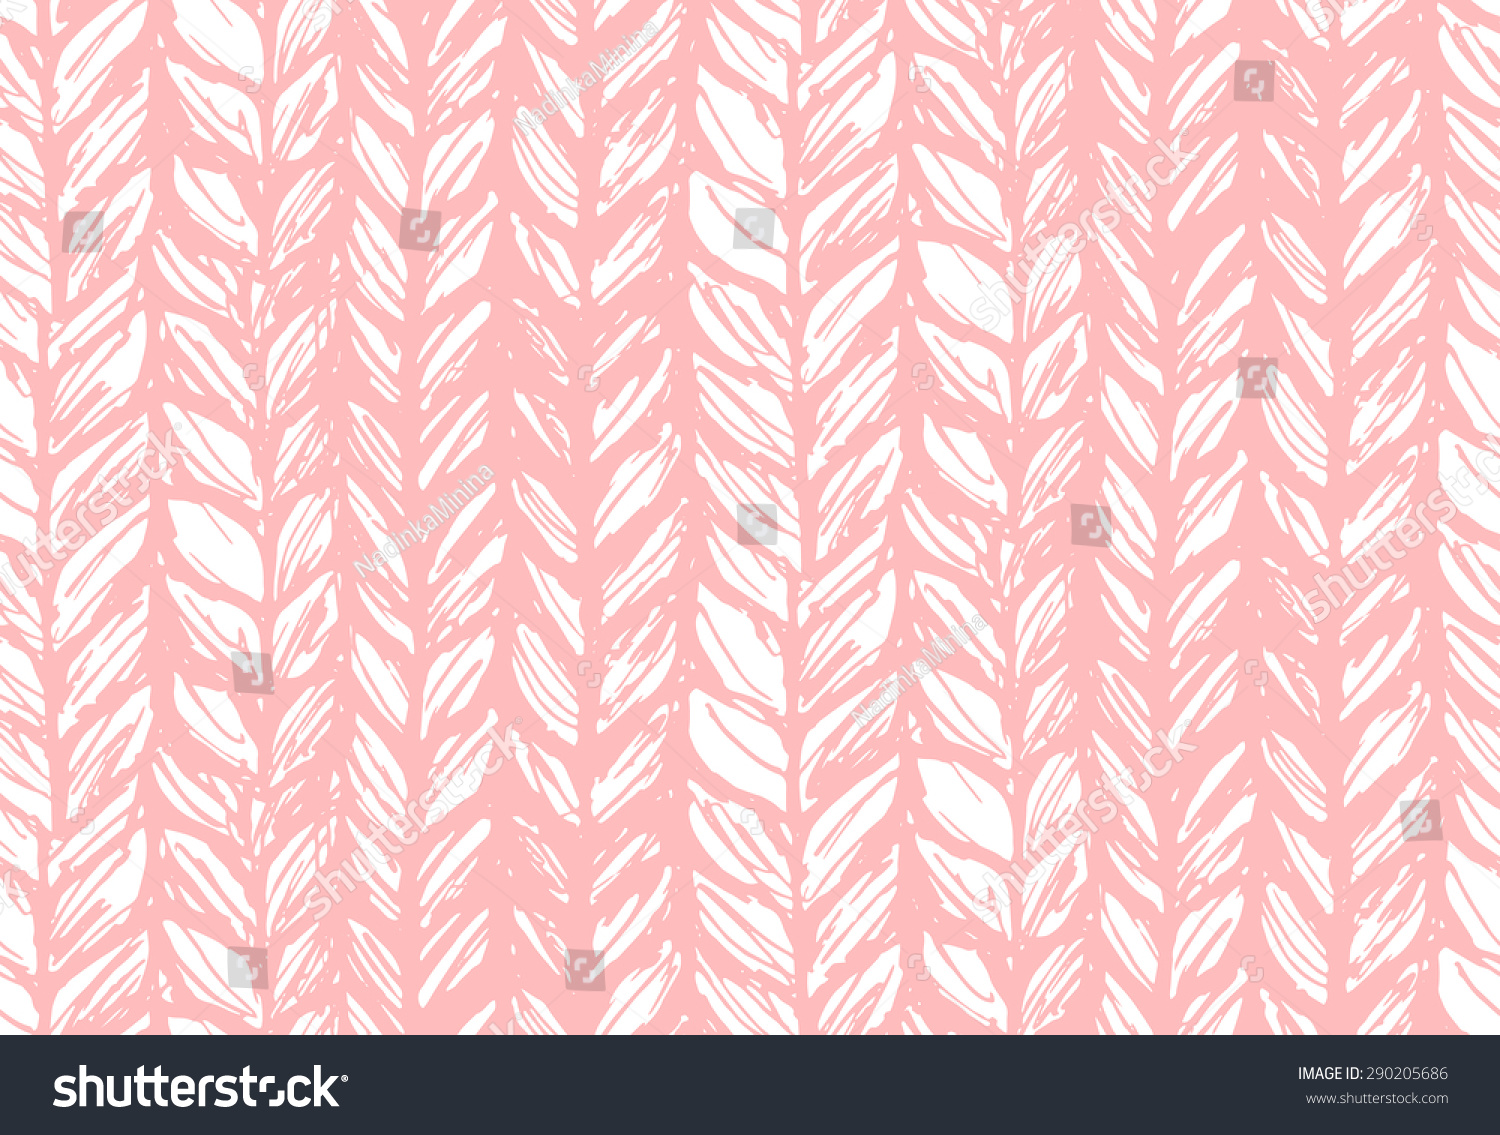 Seamless Pattern Knitting Braids Endless Texture Stock Vector ...